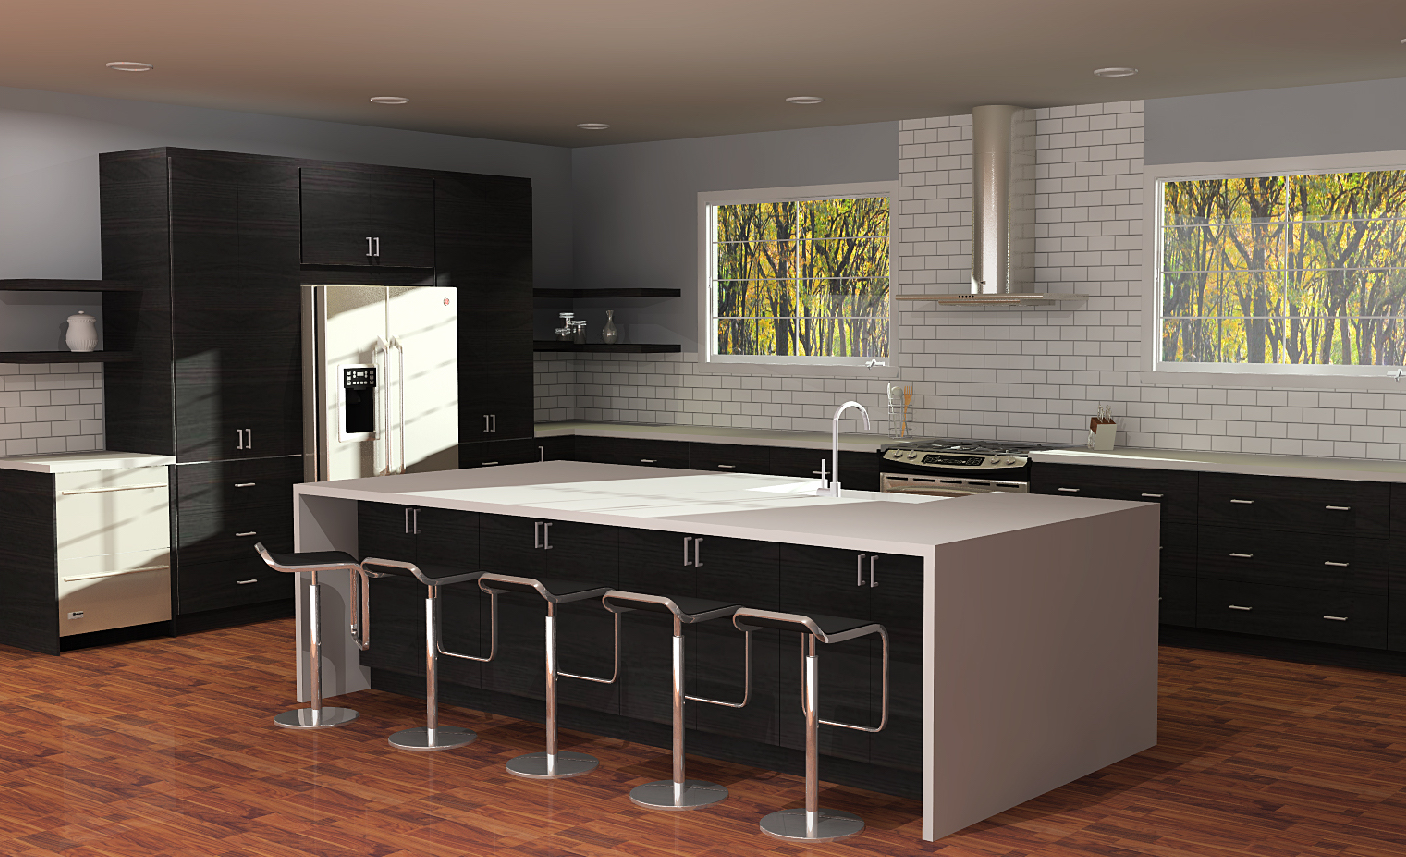 Ikea Kitchen Design Blog Welcome To The Inspired Kitchen Design Blog